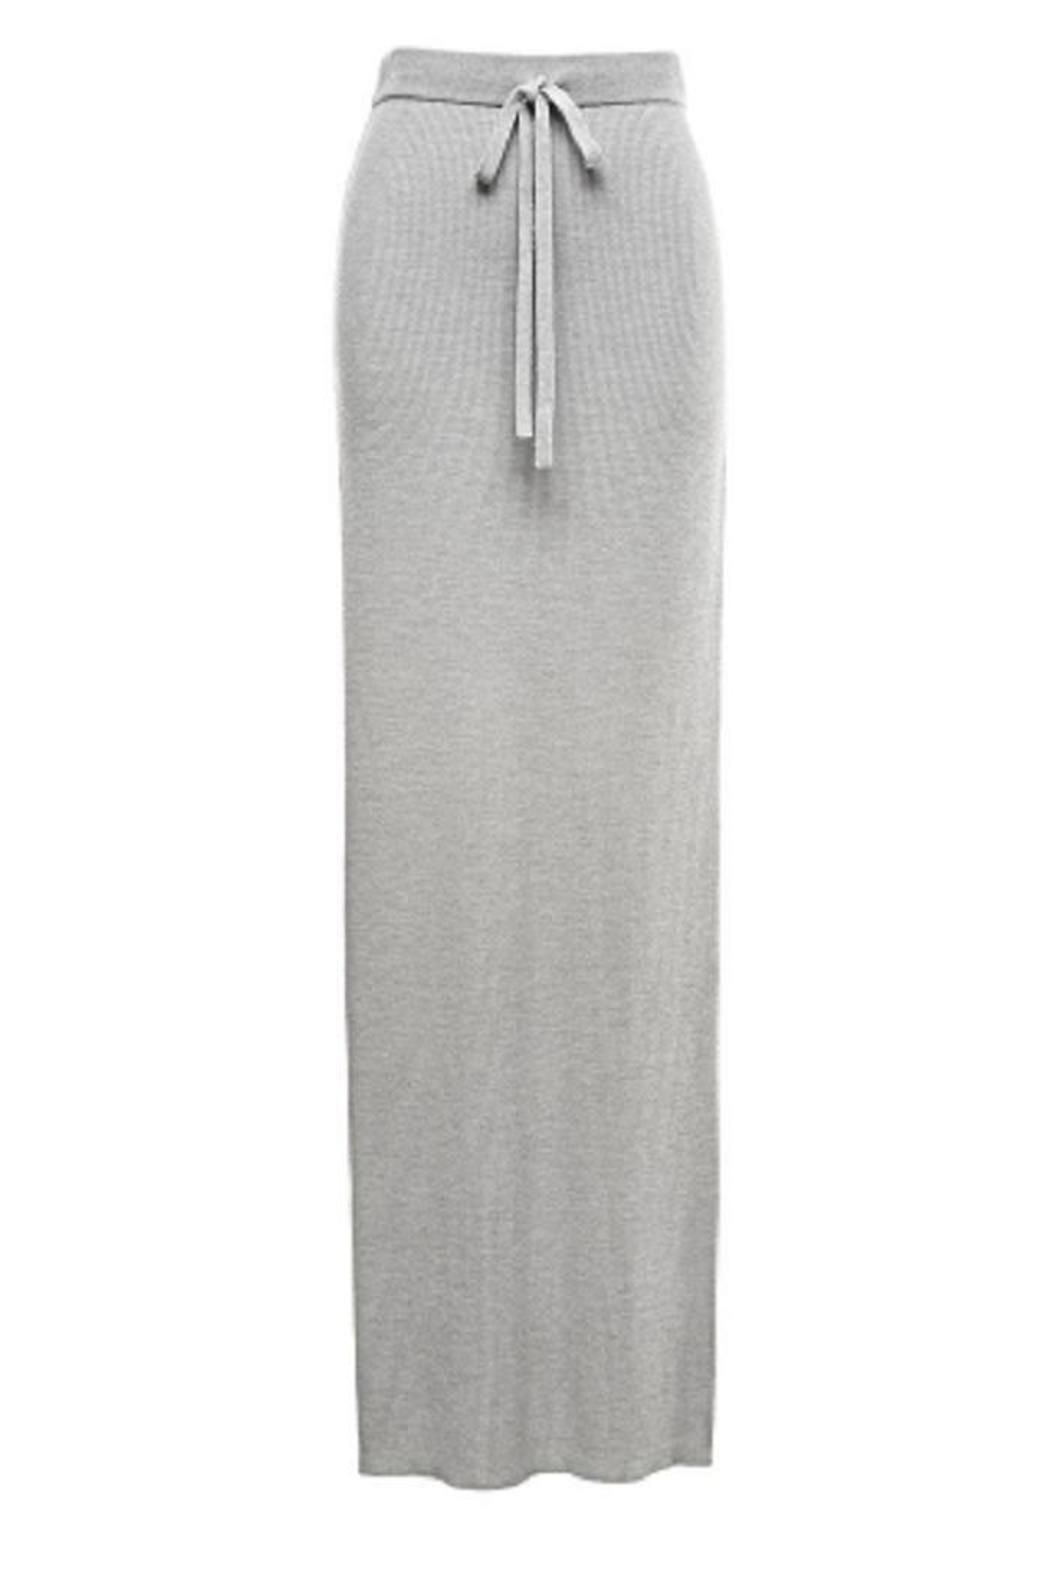 9560a5e883 This T by Alexander Wang ribbed knit long skirt in heather grey has an  elasticized waistband